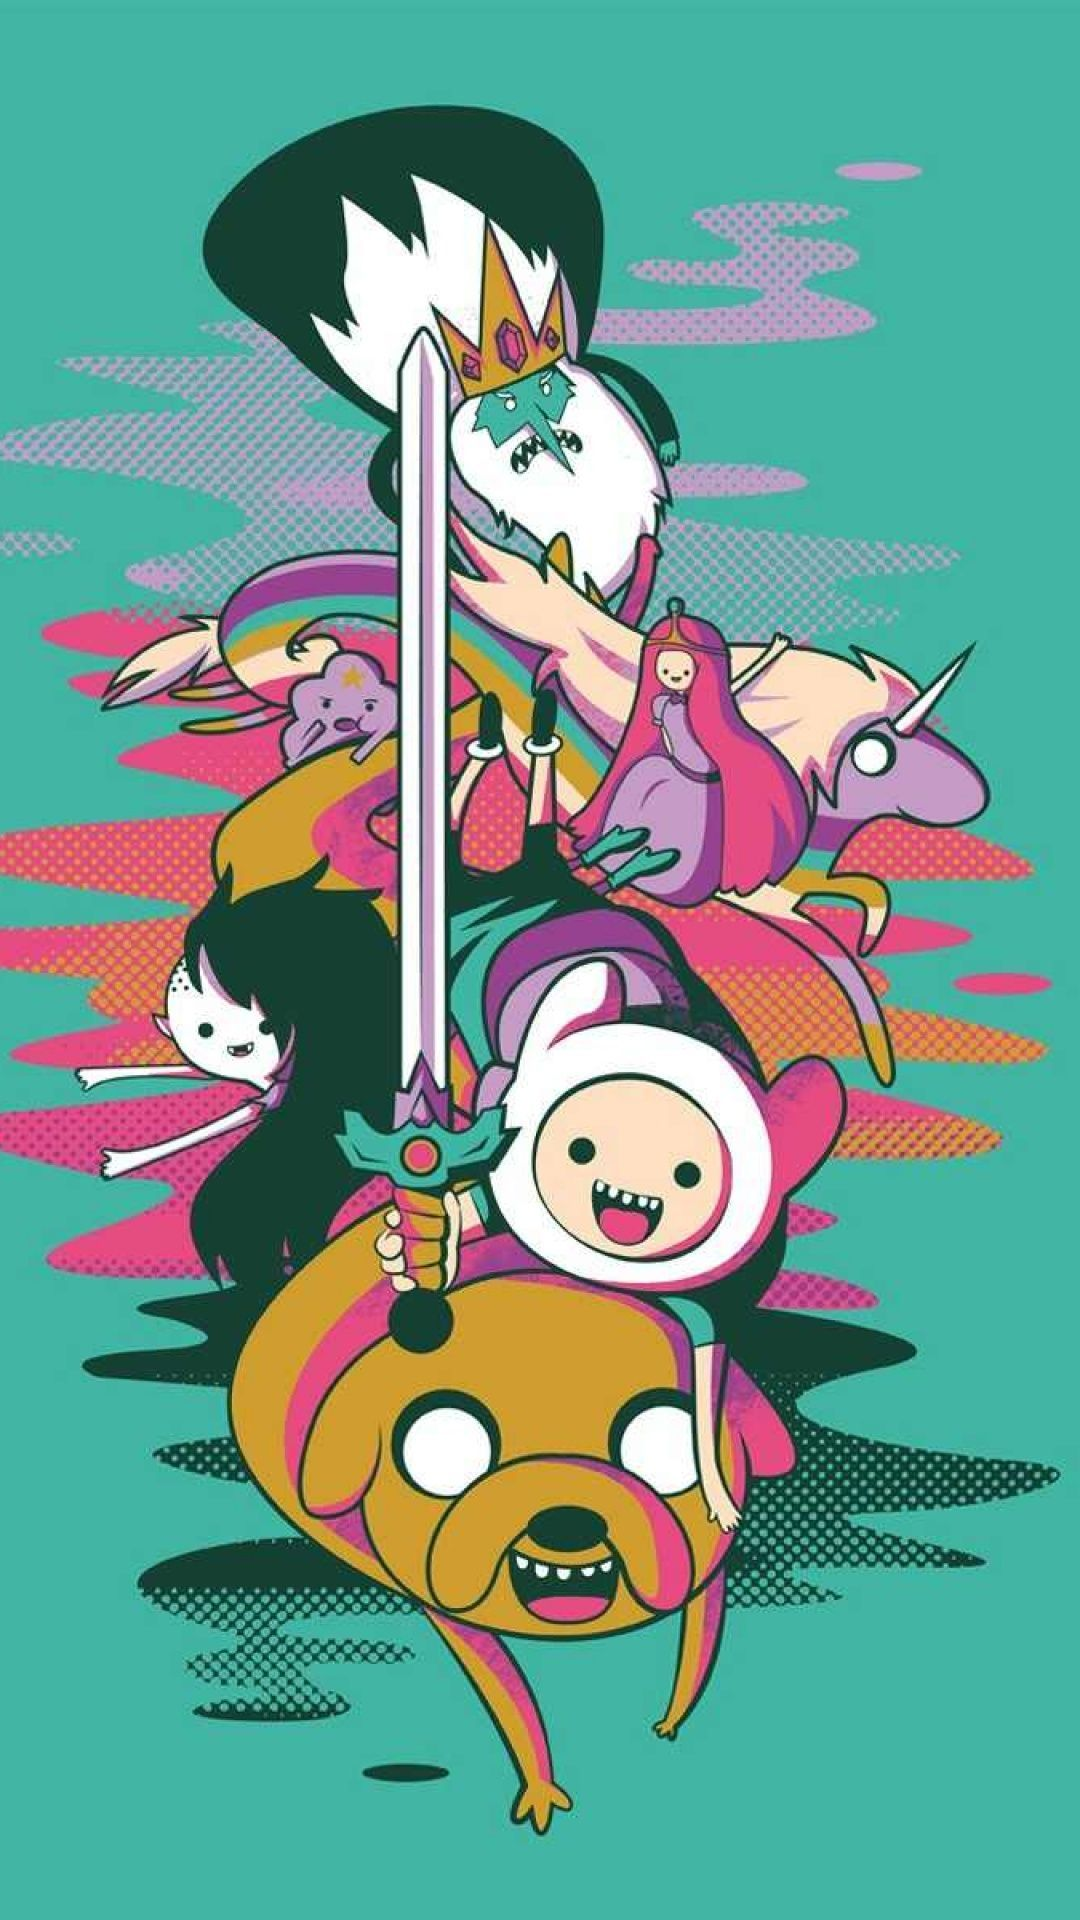 60+ Adventure Time - Android, iPhone, Desktop HD ...